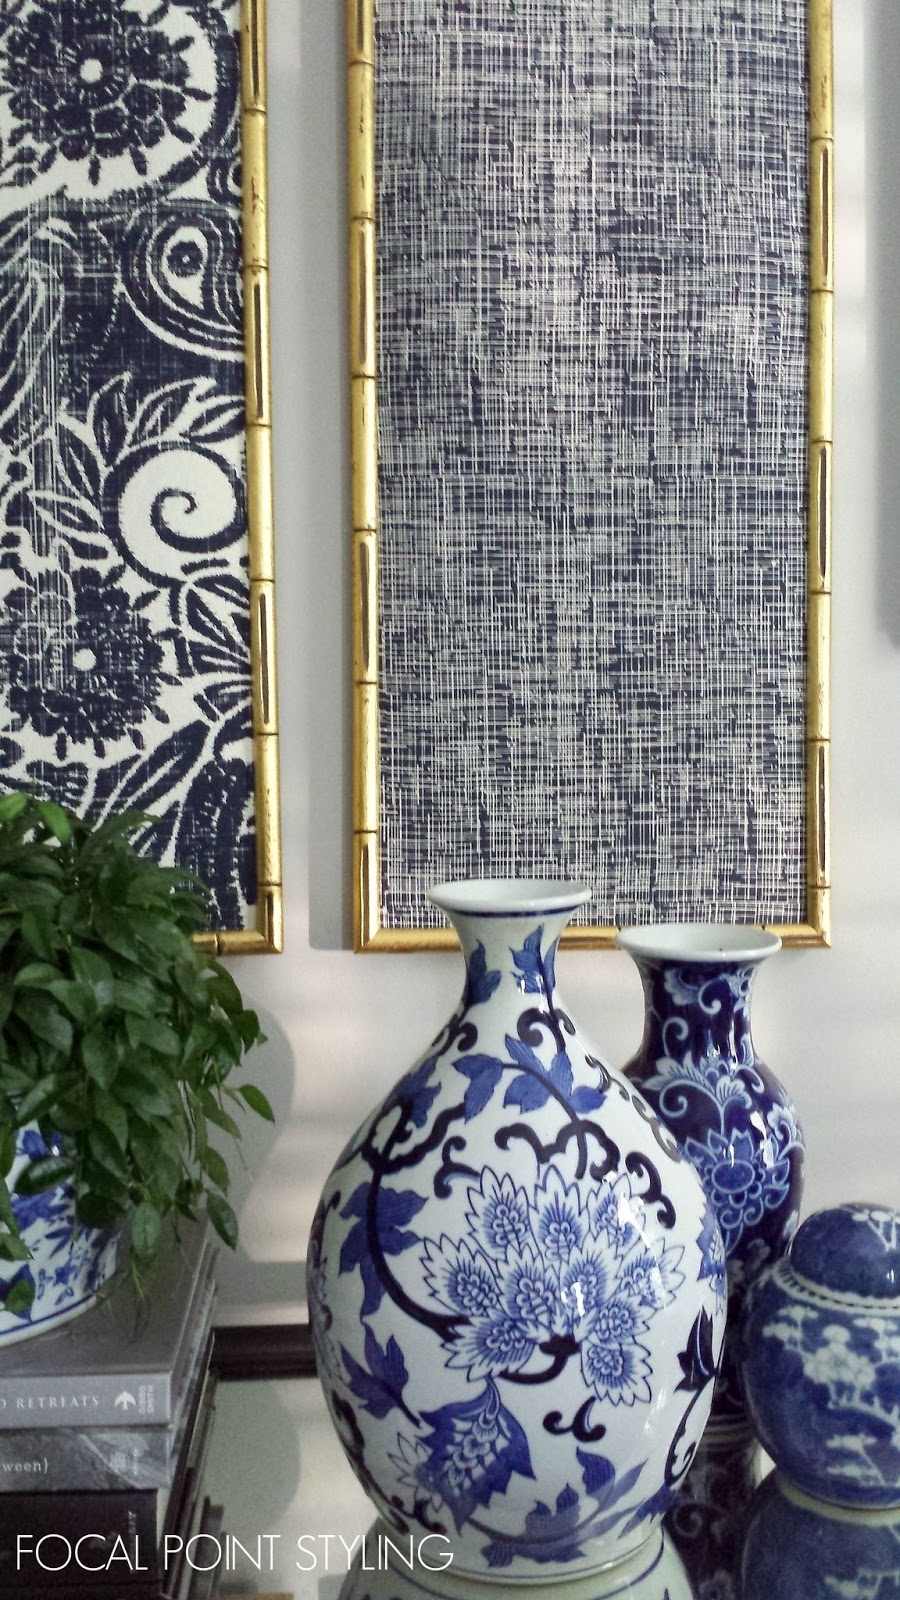 Focal Point Styling: Diy Indigo Wall Art With Framed Fabric Regarding Recent White Fabric Wall Art (View 7 of 15)